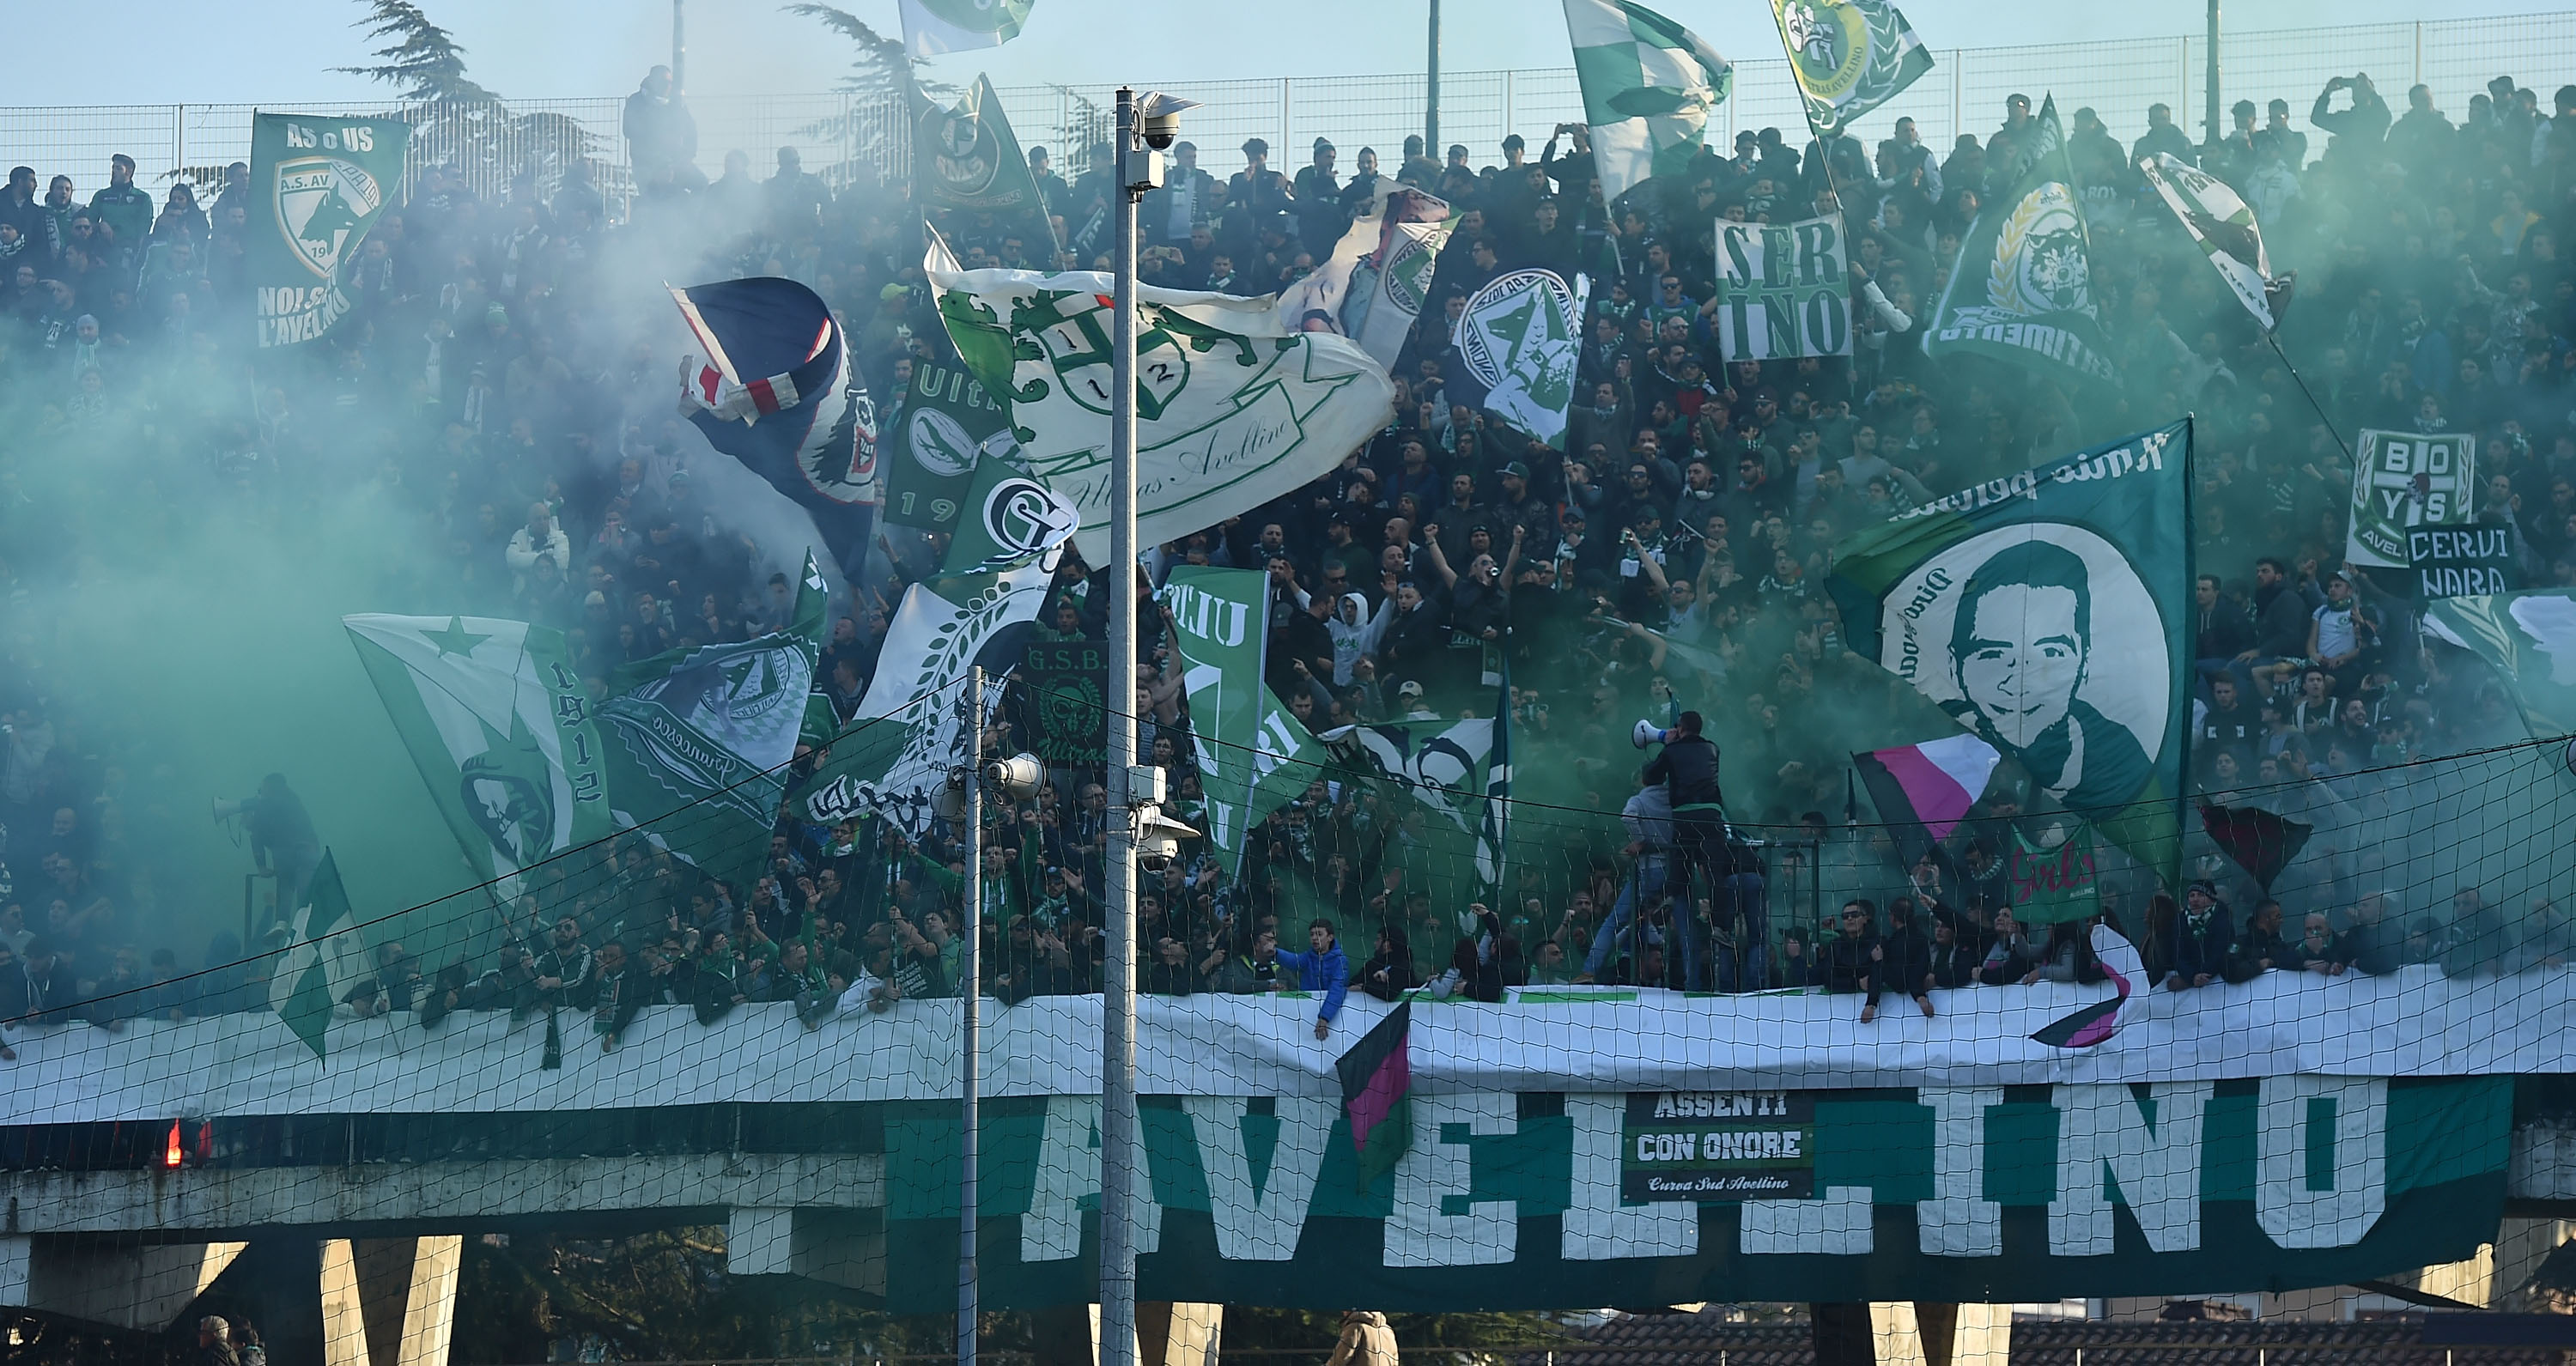 AVELLINO, ITALY - DECEMBER 10: Fans of US Avellino prior the Serie B match between US Avellino and Benevento Calcio at Stadio Partenio on December 10, 2016 in Avellino, Italy. (Photo by Giuseppe Bellini/Getty Images)